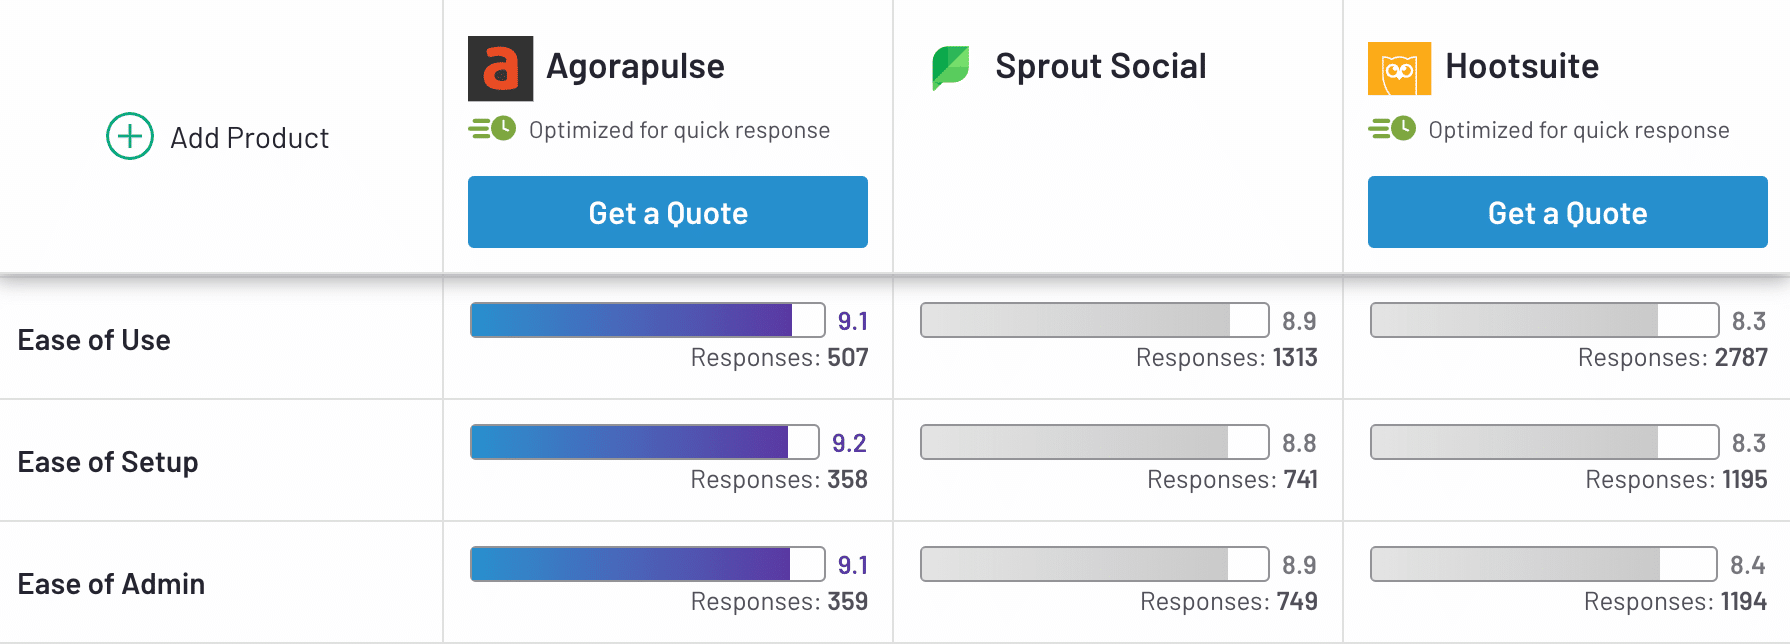 ease of use, setup and admin ratings of agorapulse, sprout social, and hootsuite